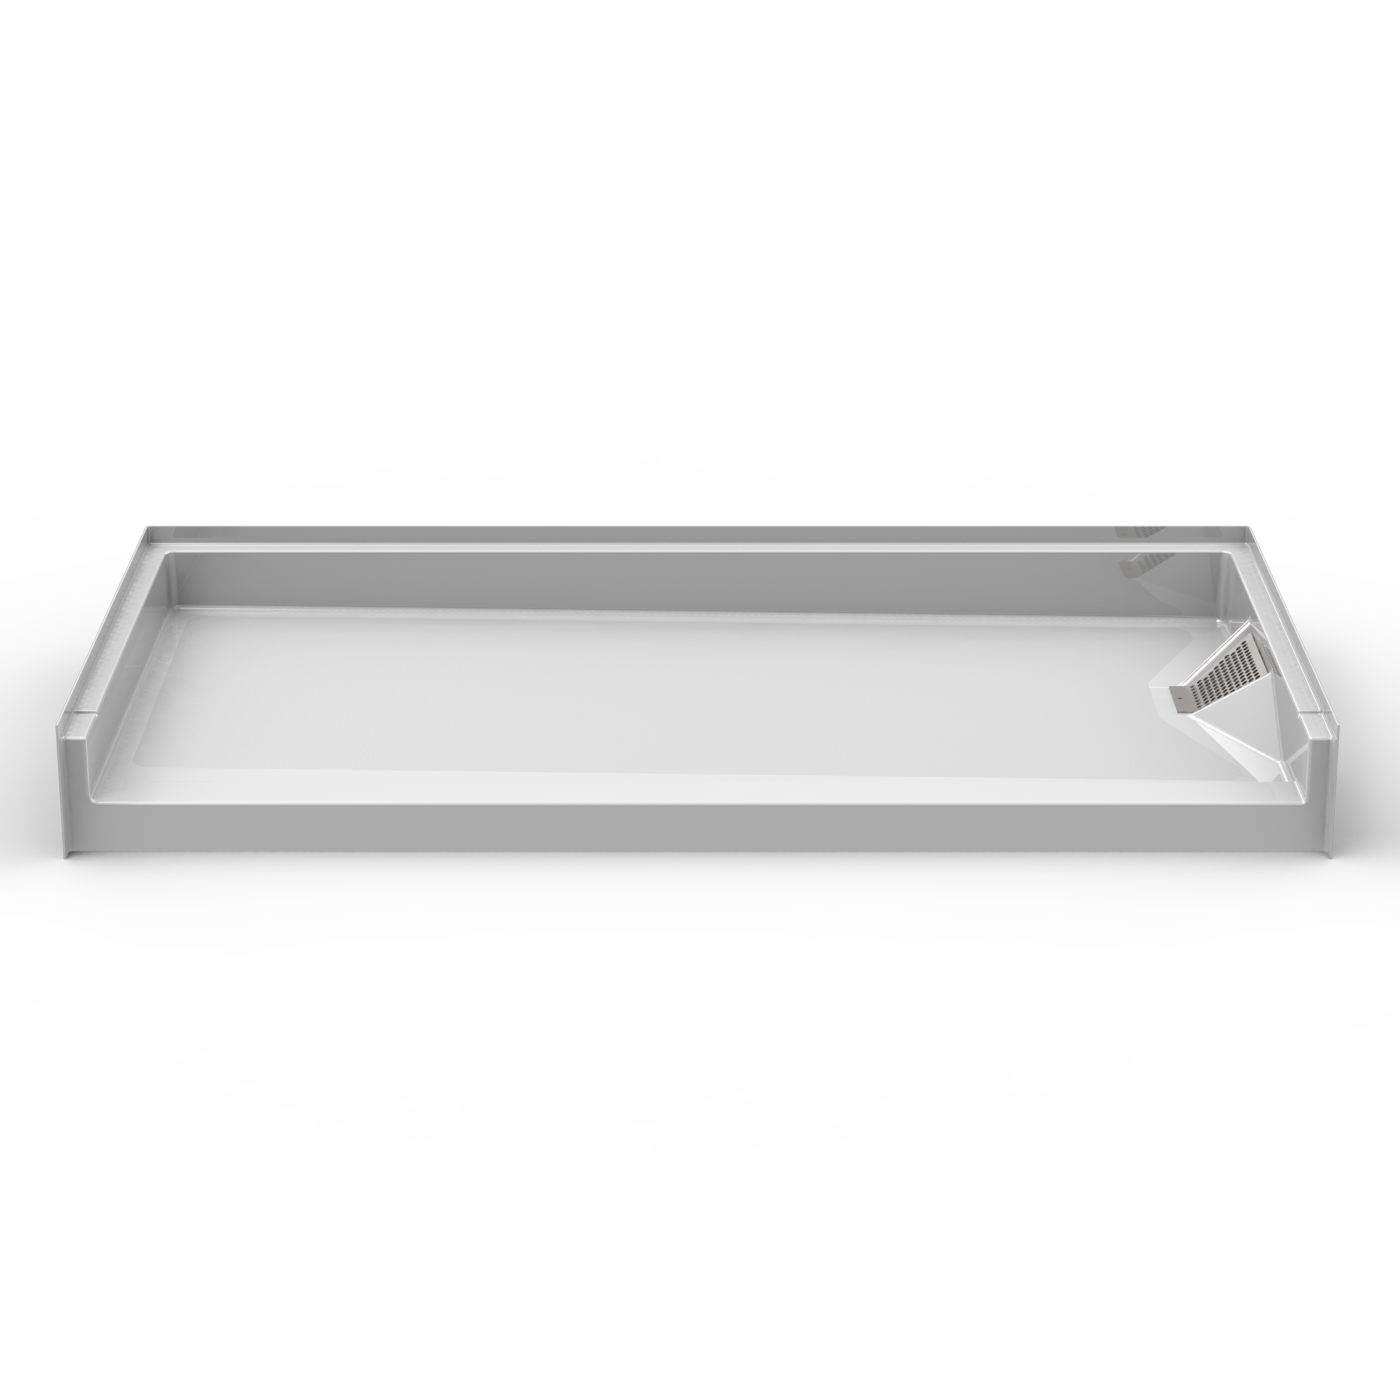 30 X 30 Shower Pan.Barrier Free Shower Pan Seamless 60x30 W Side Drain For Above Floor Rough In Plumbing